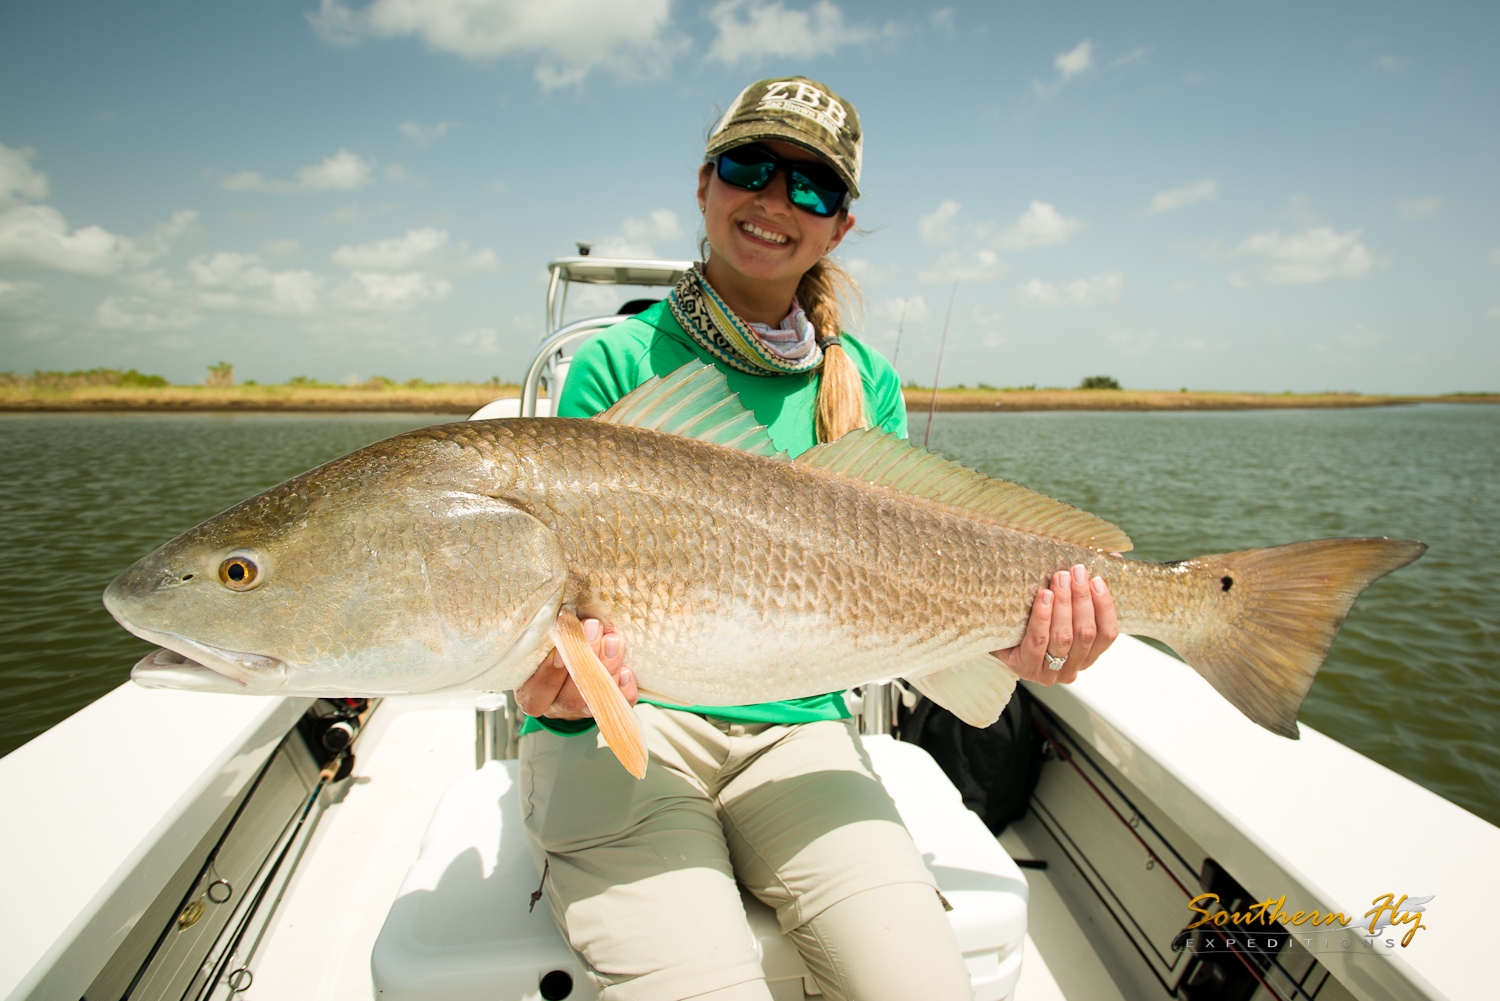 fishing new orleans louisiana with southern fly expeditions and captain brandon keck